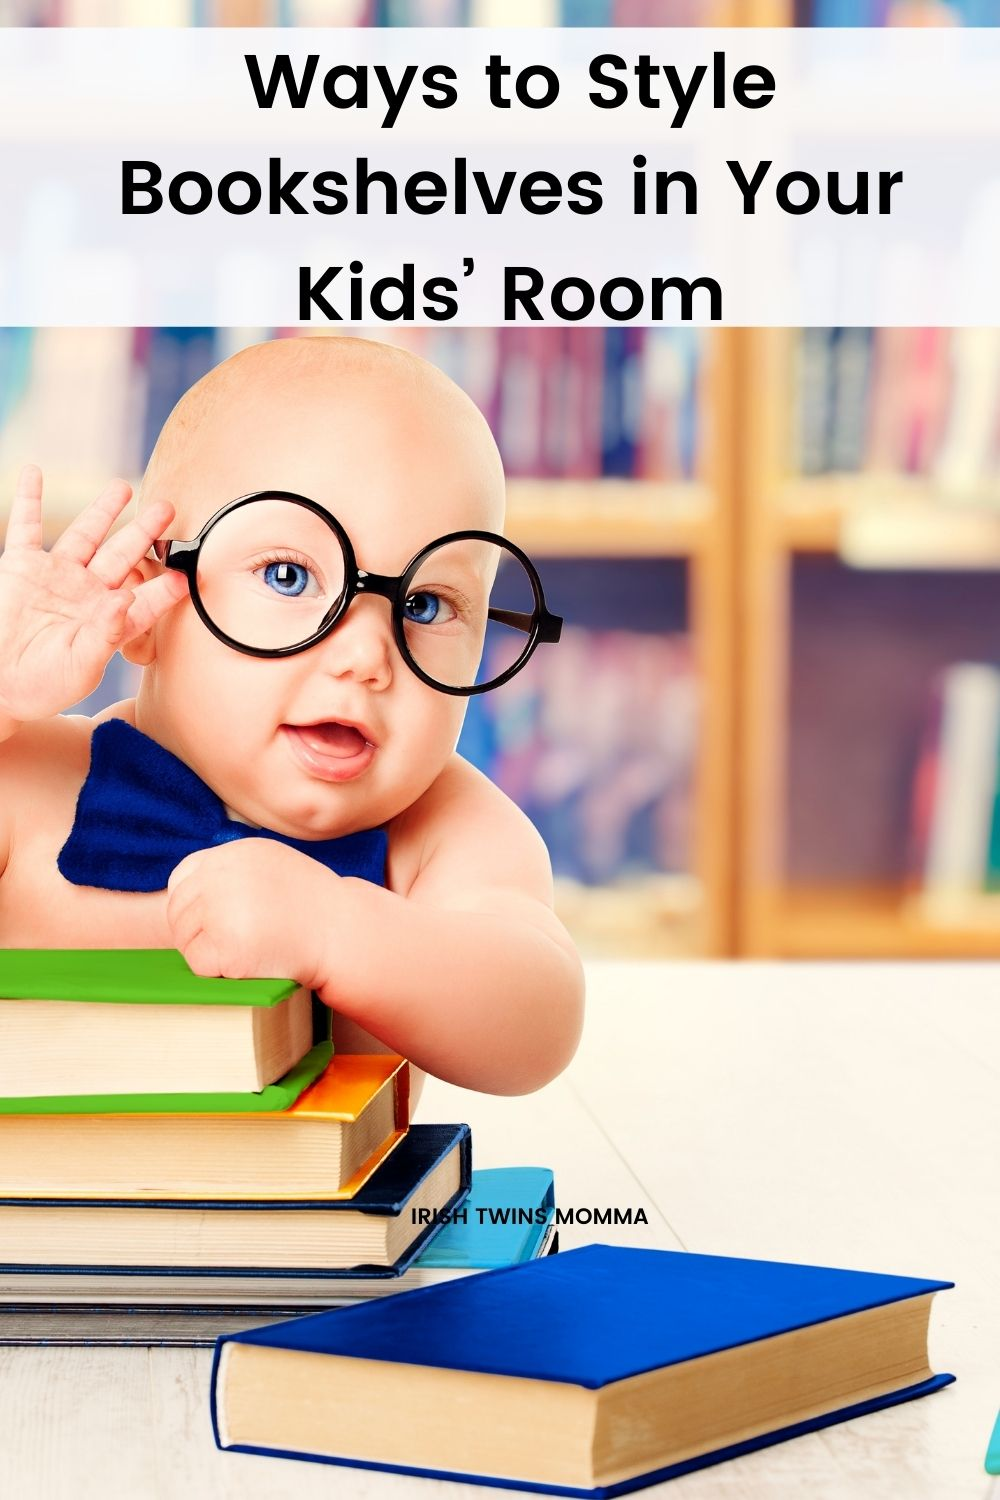 Ways to Style Bookshelves in Your Kids' Room